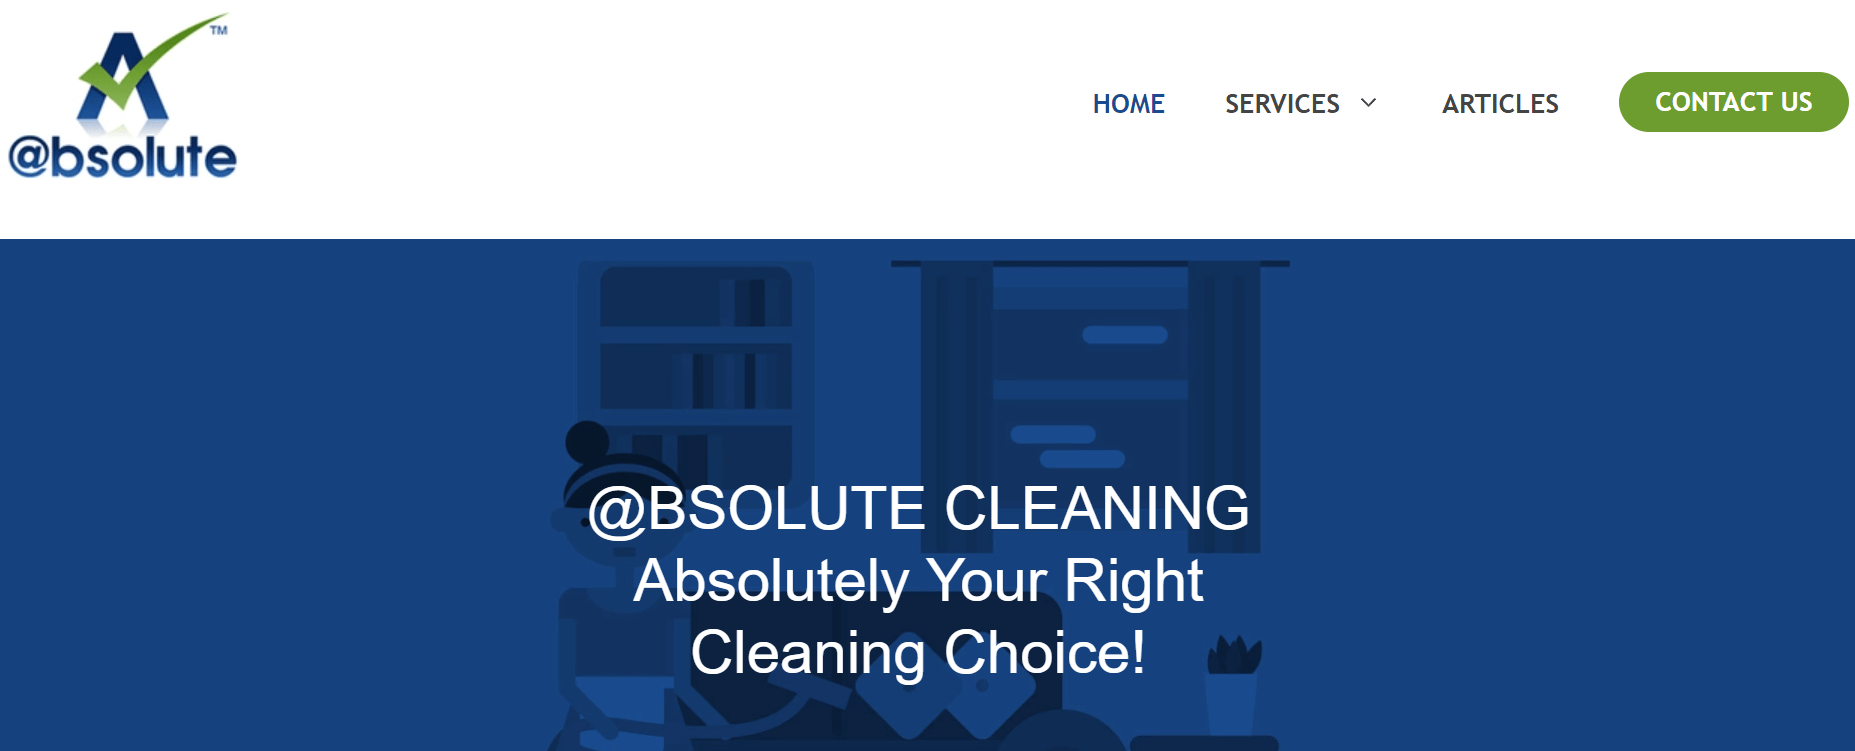 Absolute Cleaning is Laundry Delivered in 24 Hours. - Best Laundry Service Singapore